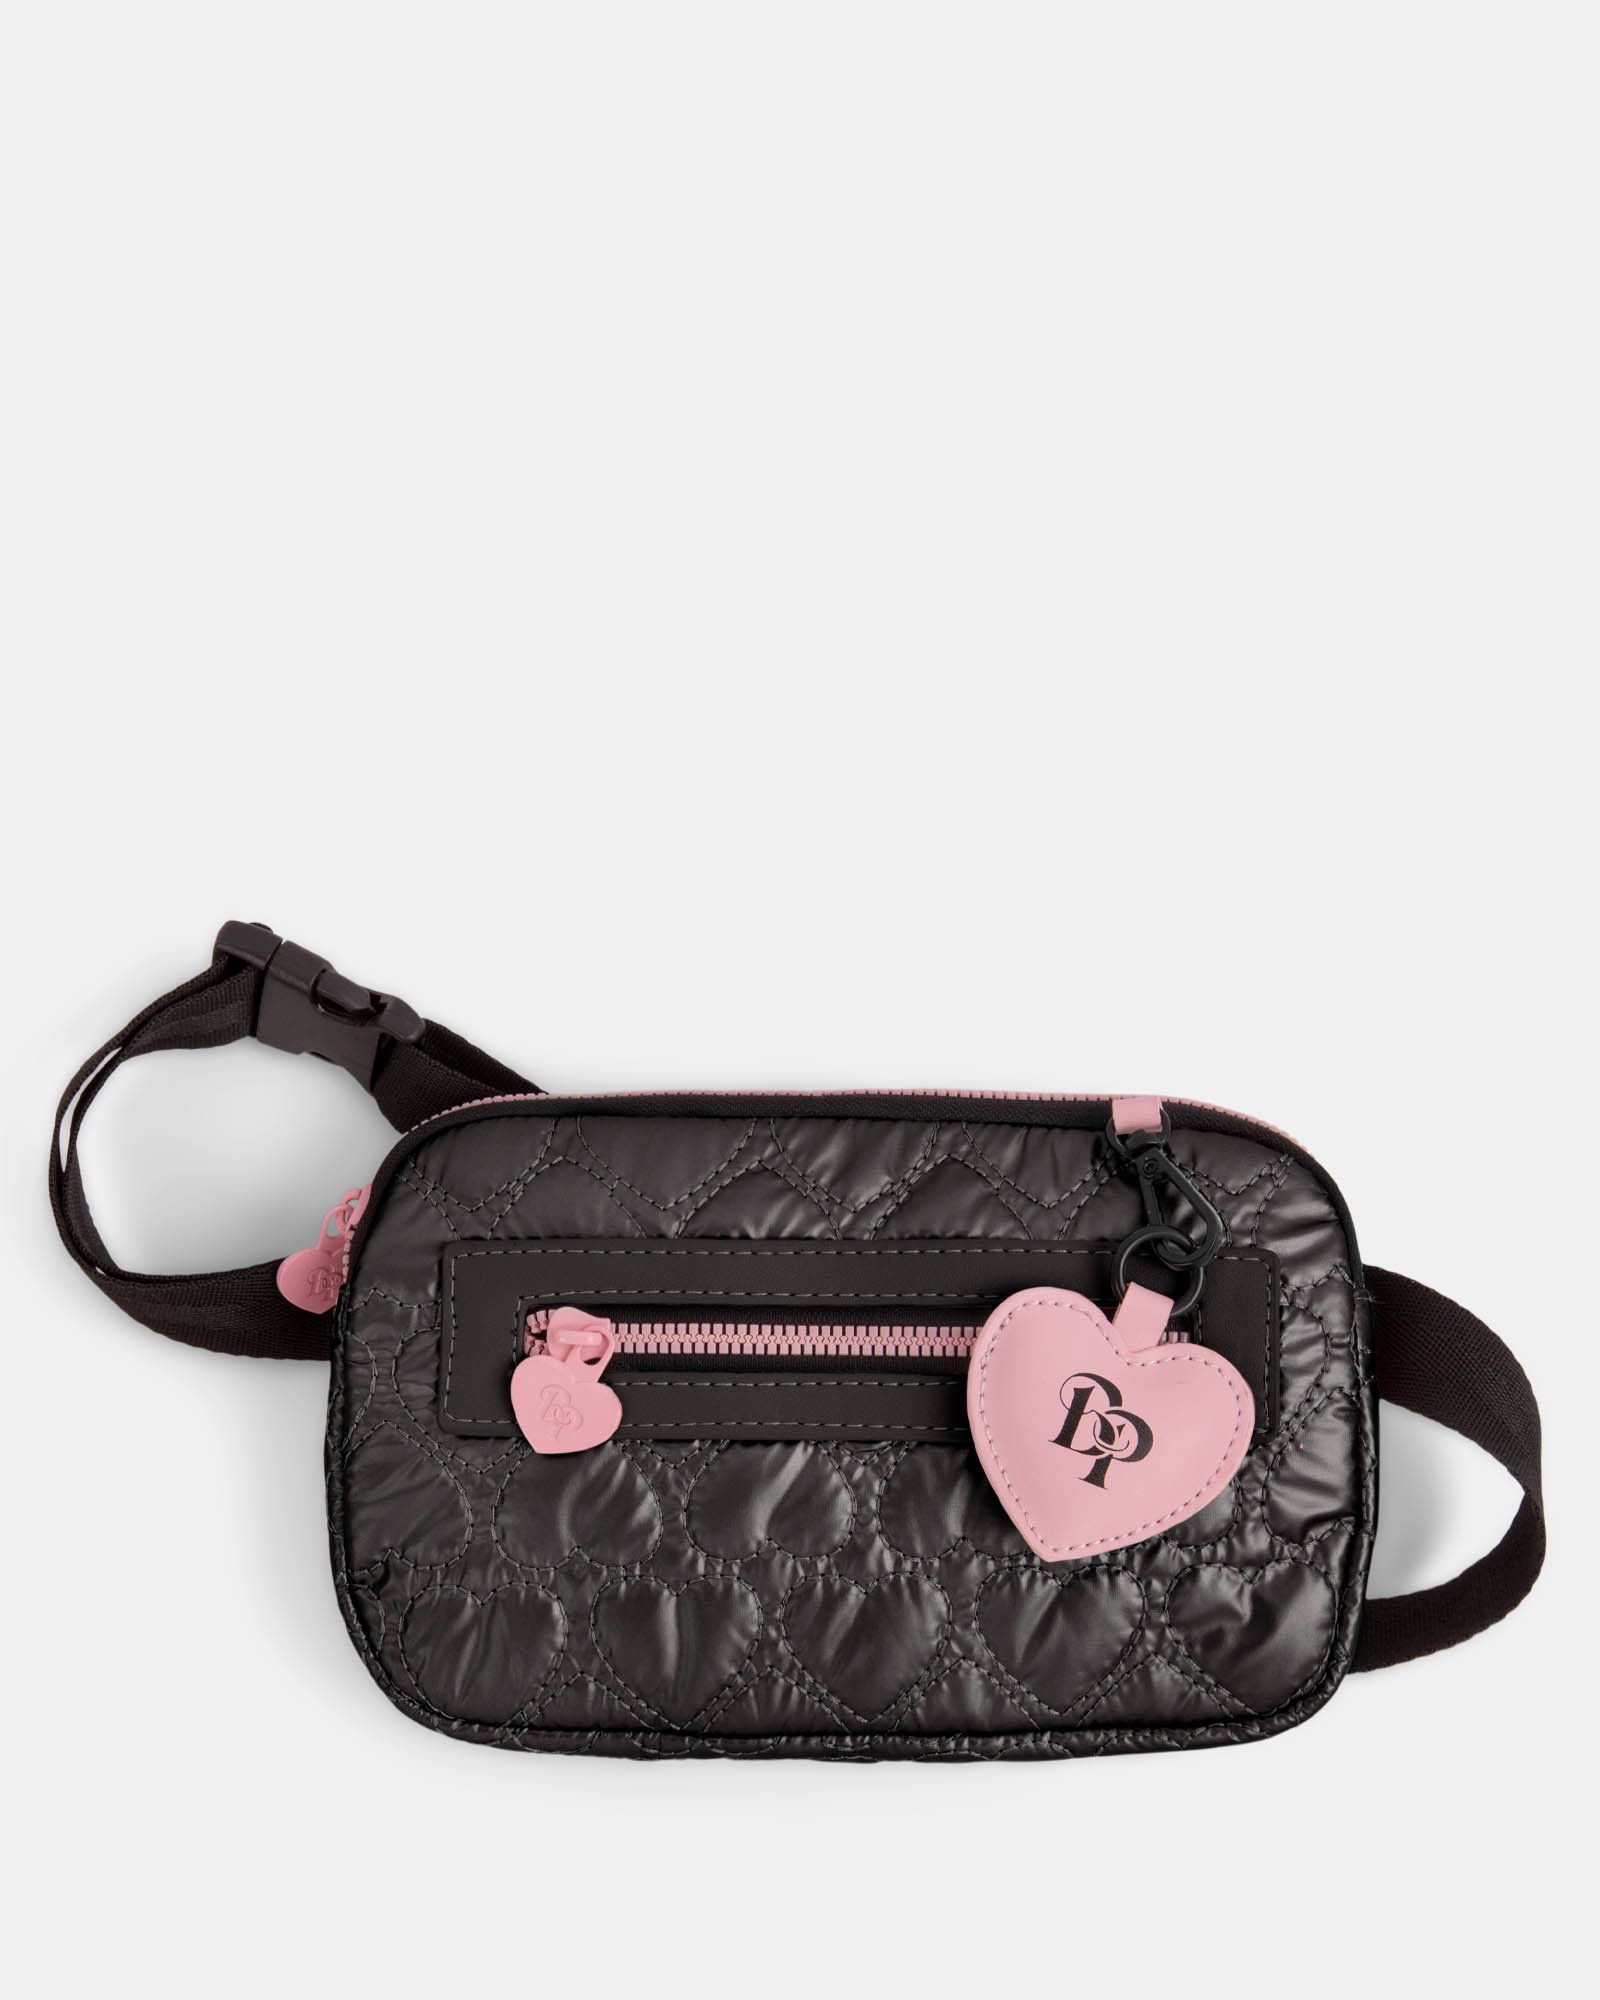 BLACKPINK - Be Still My Heart Collection - Money belt Soft, quilted pink material with a delicate heart-shaped pattern - black - BLACKPINK - Zoom